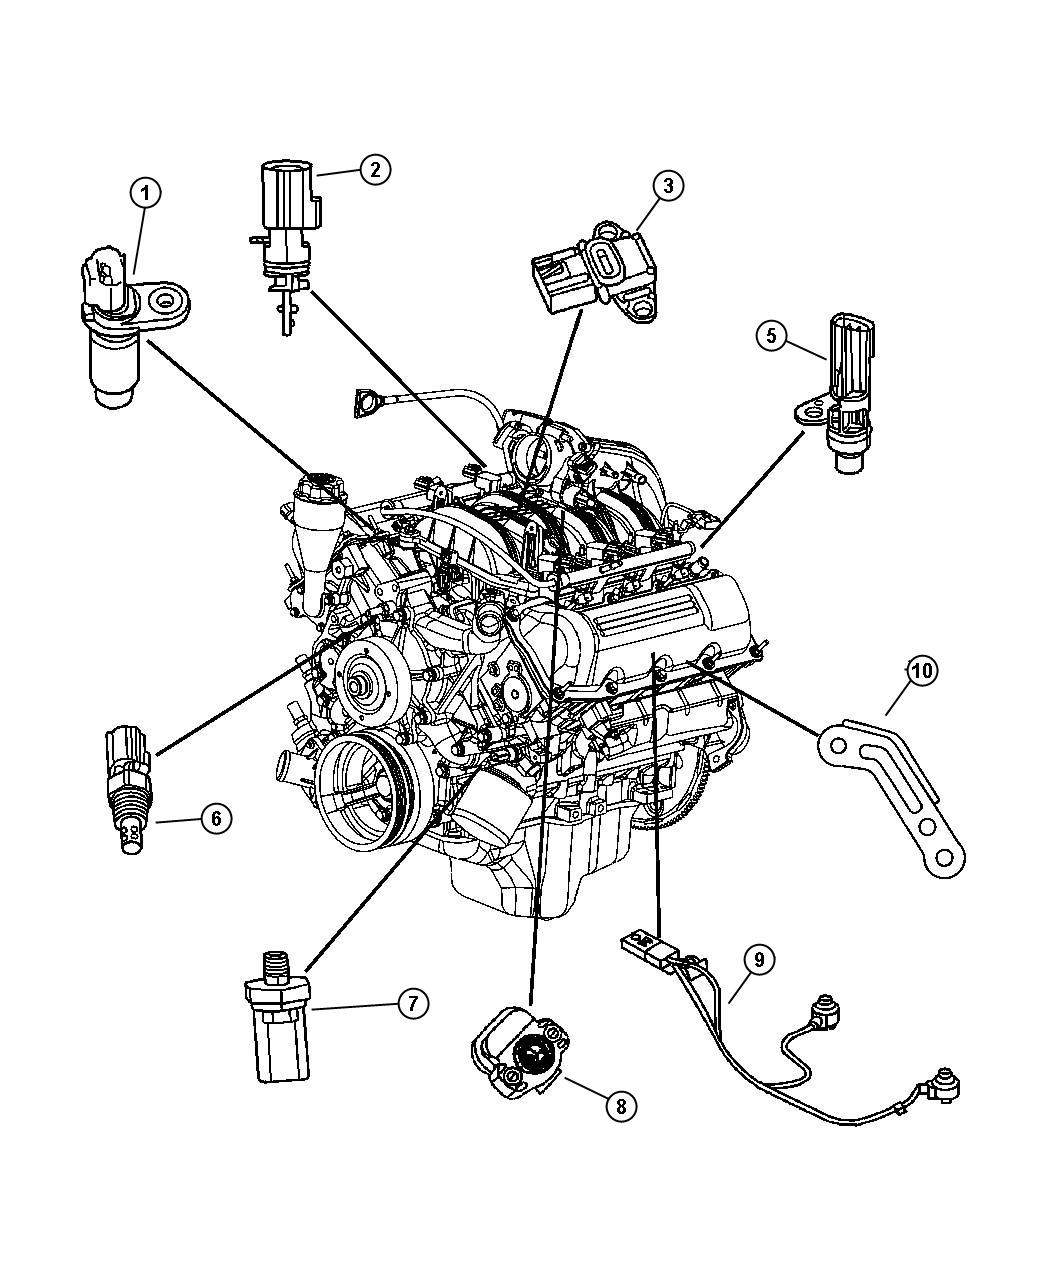 dodge ram 1500 engine diagram on 2003 durango dodge wiring diagram and circuit schematic